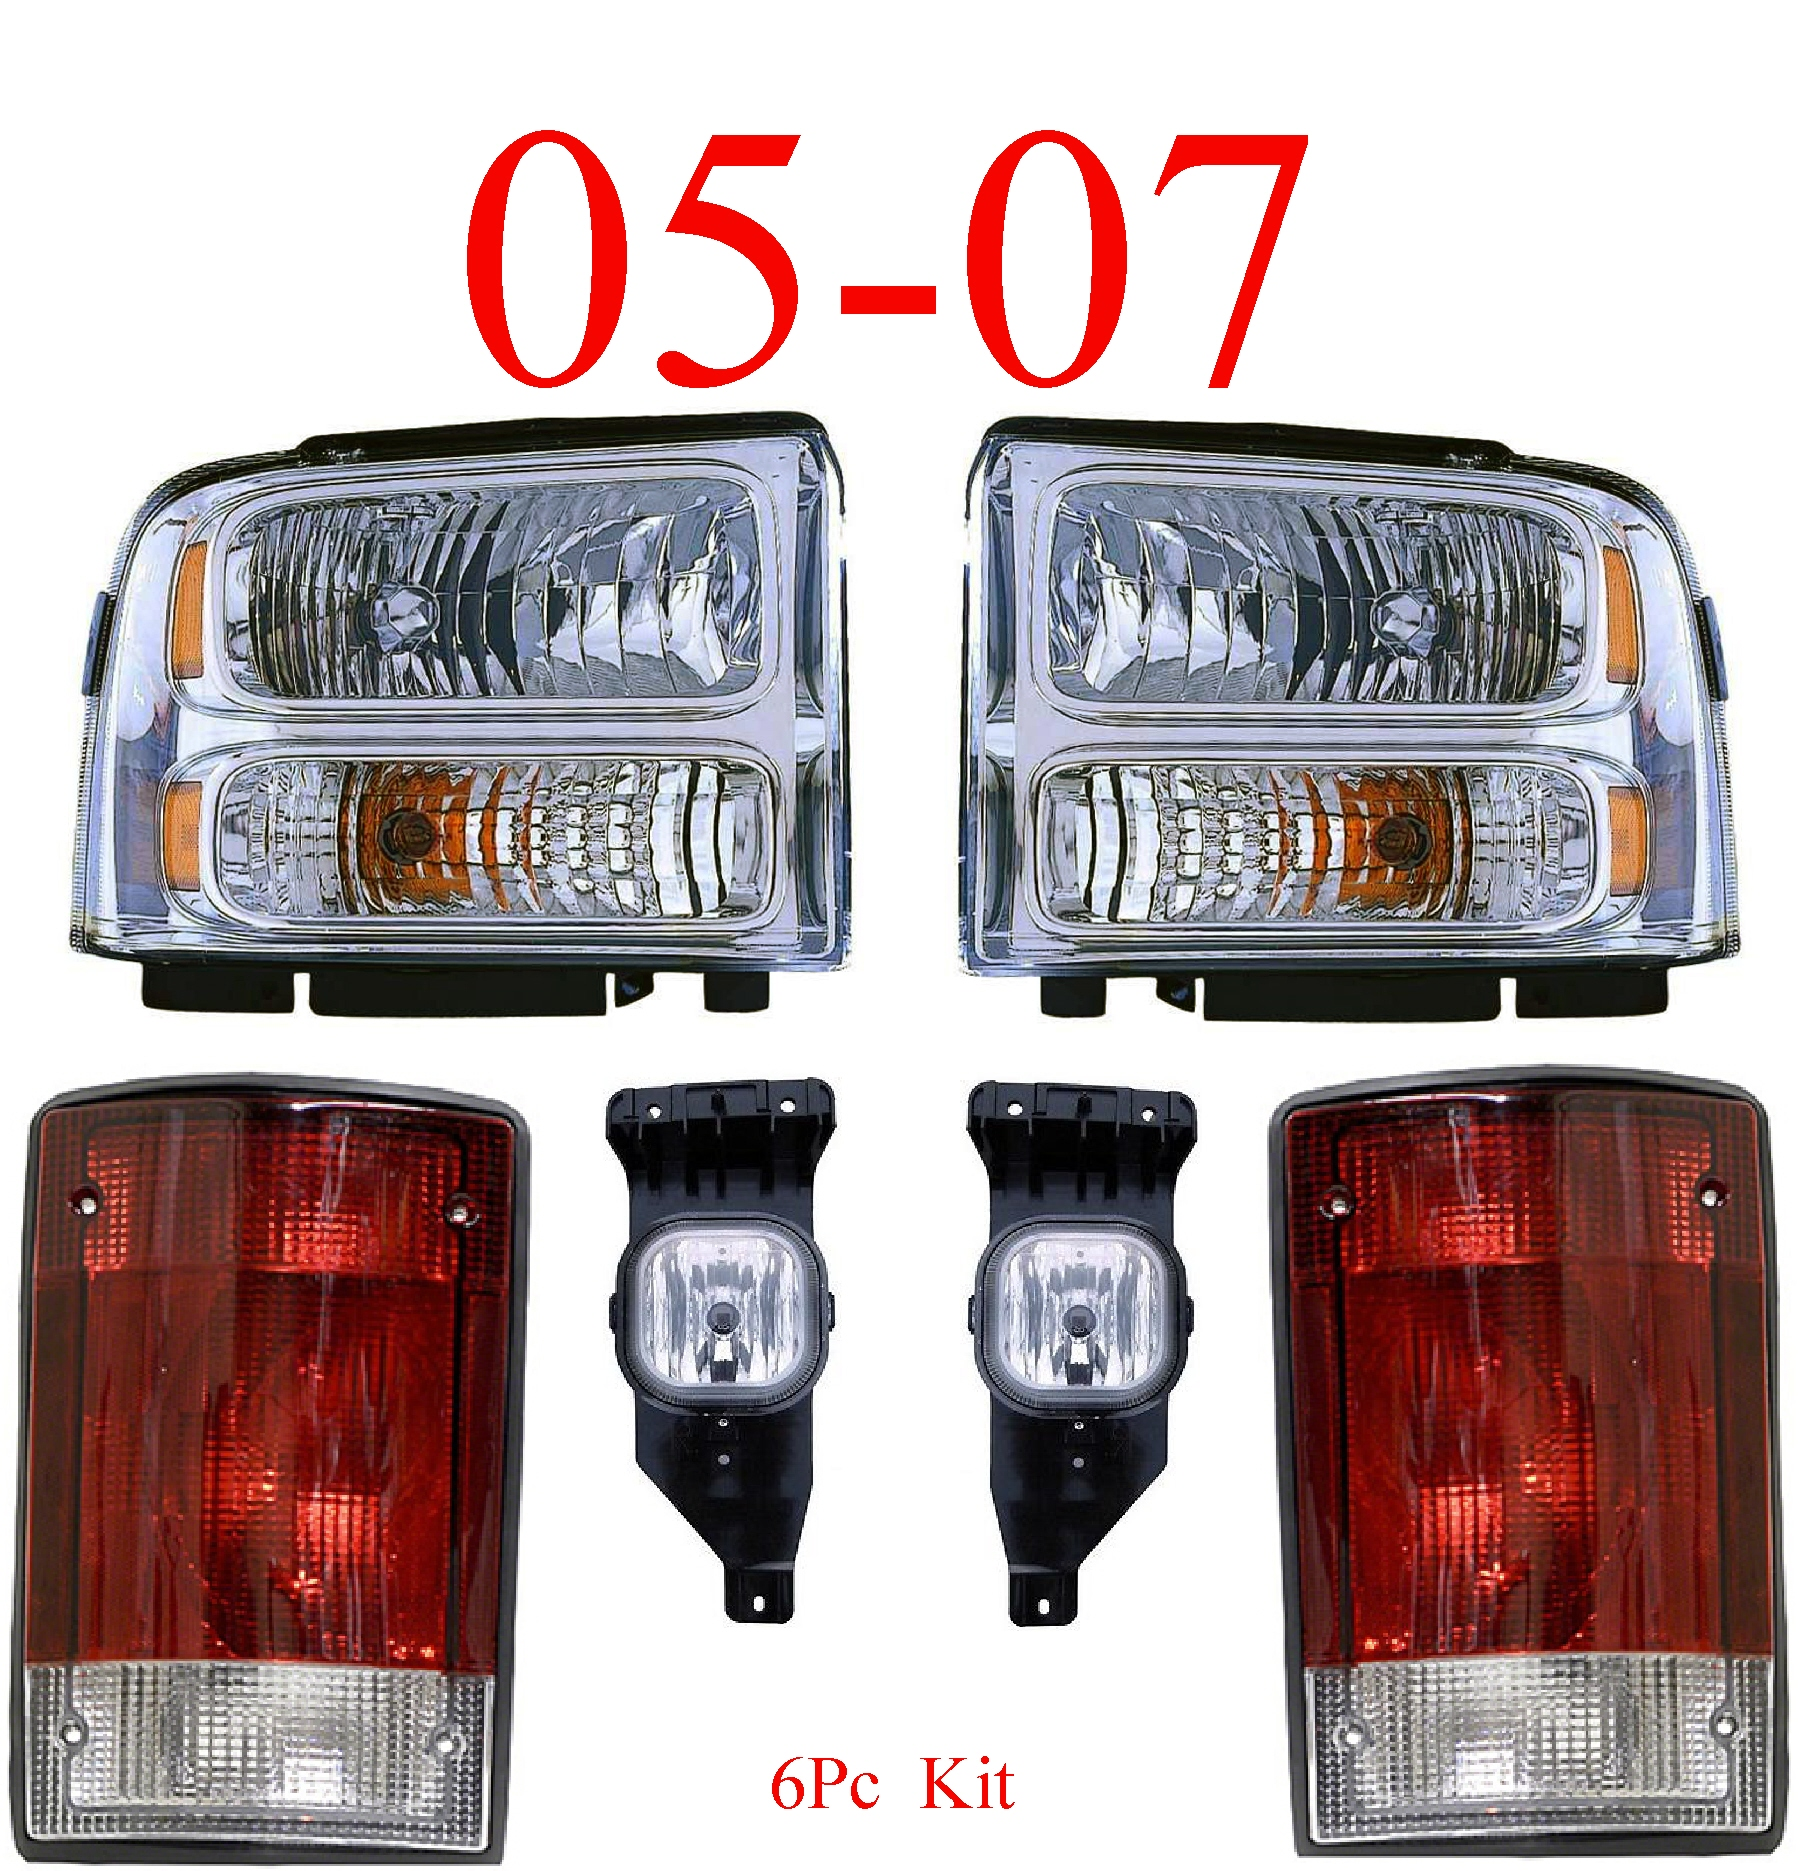 05 Ford Excursion 6Pc Head Light, Fog Light, Tail Light Kit